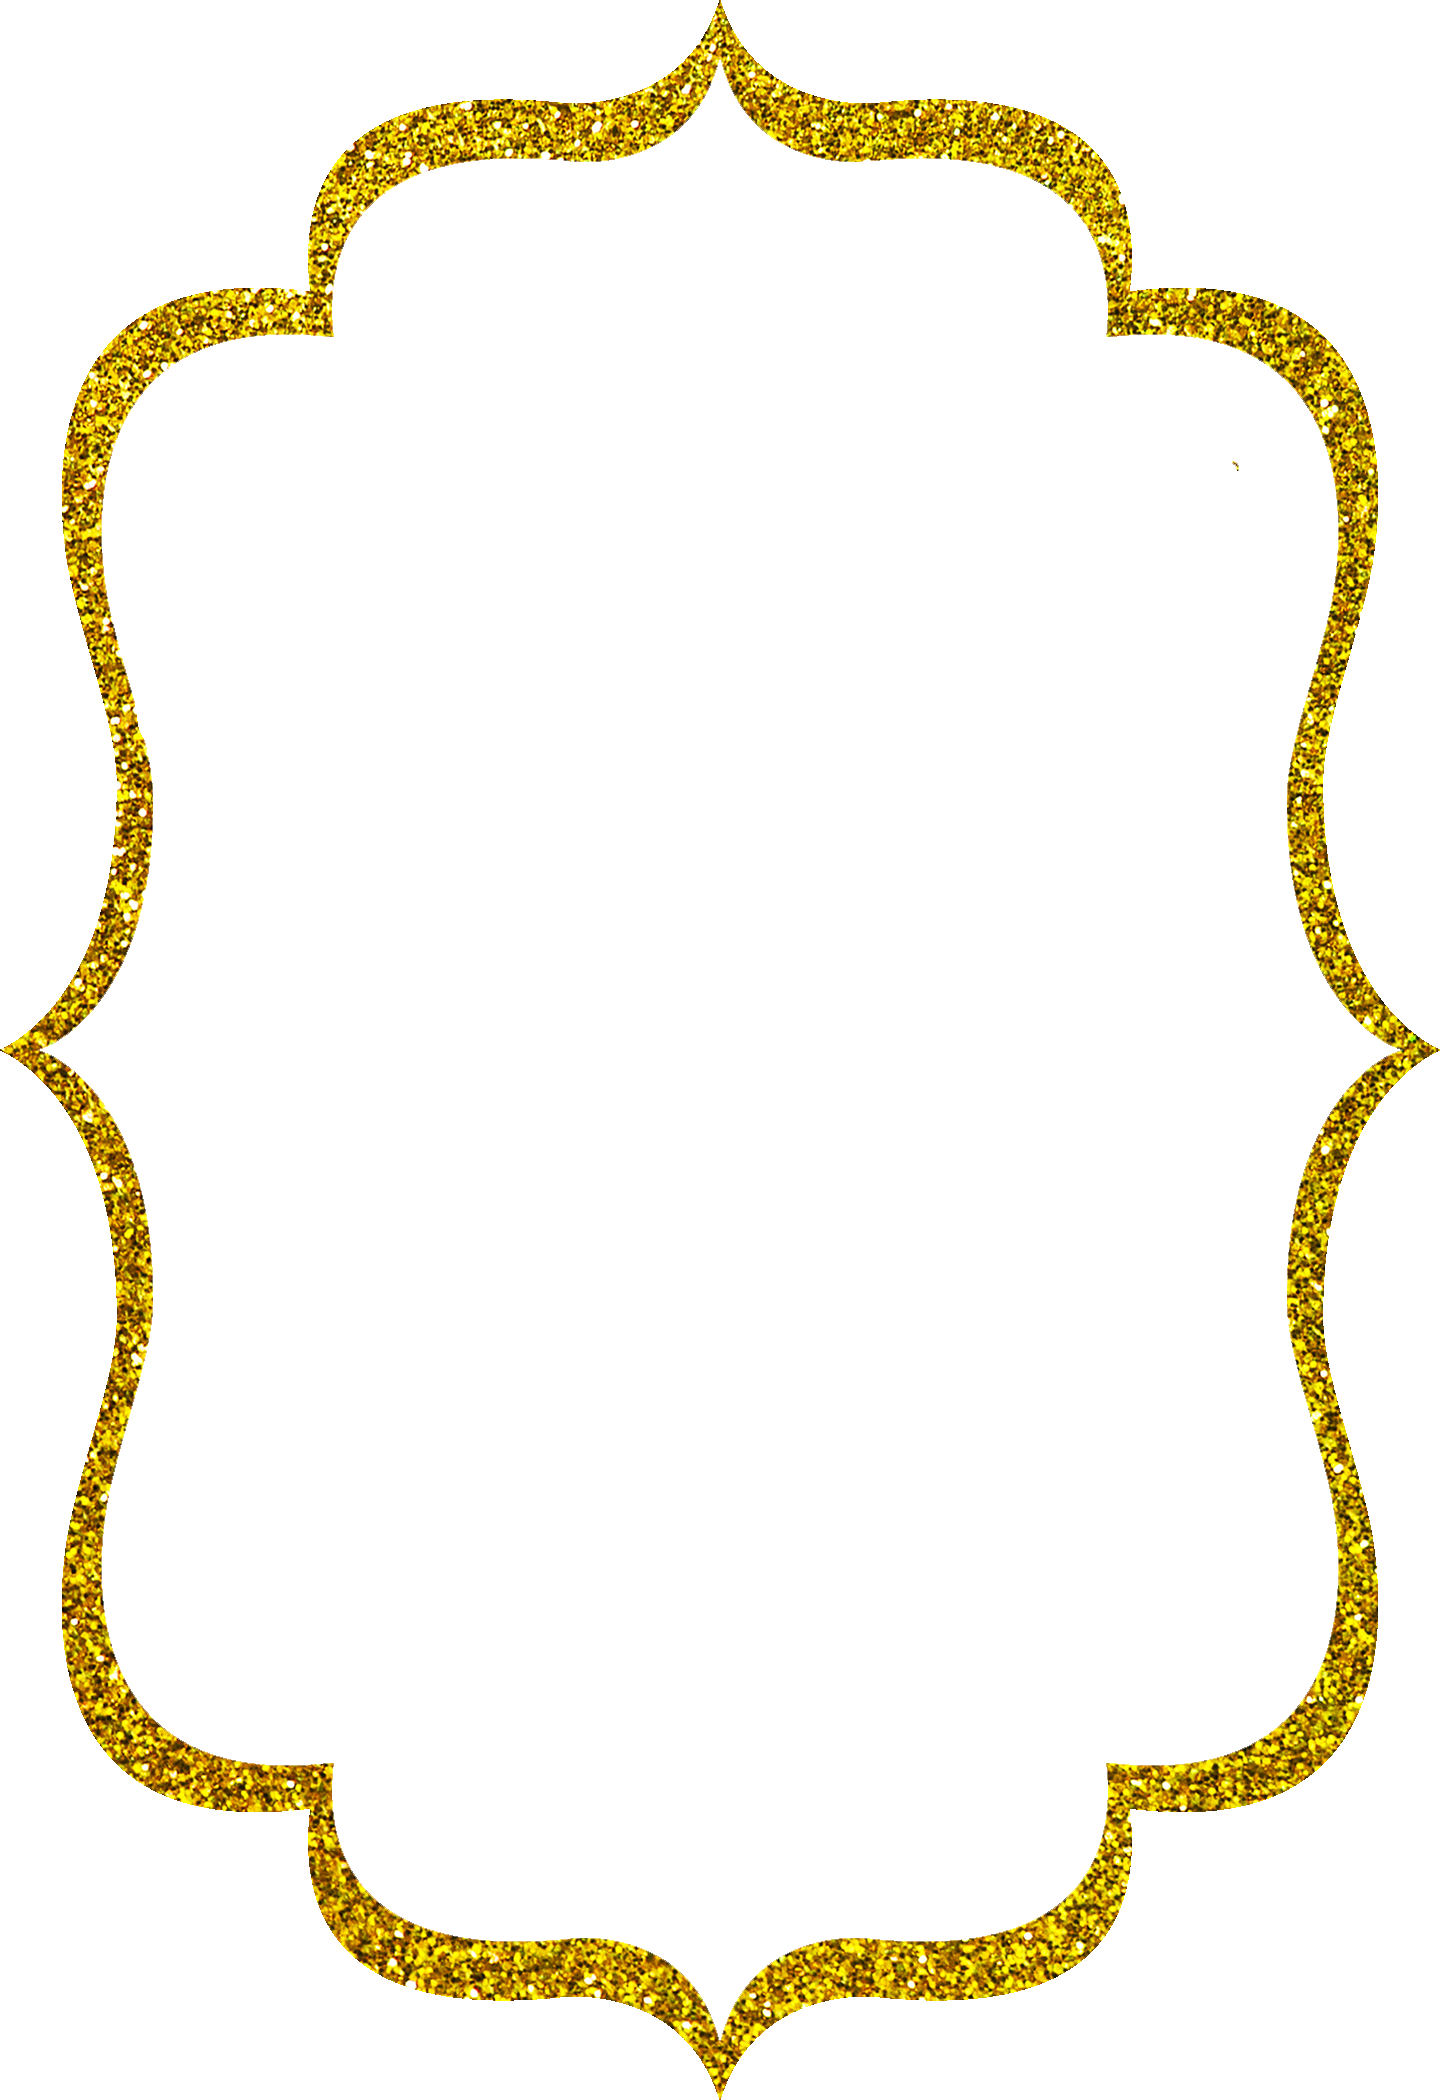 Chalk Transparent Border: 15 Gold Glitter Border Png For Free Download On WebStockReview